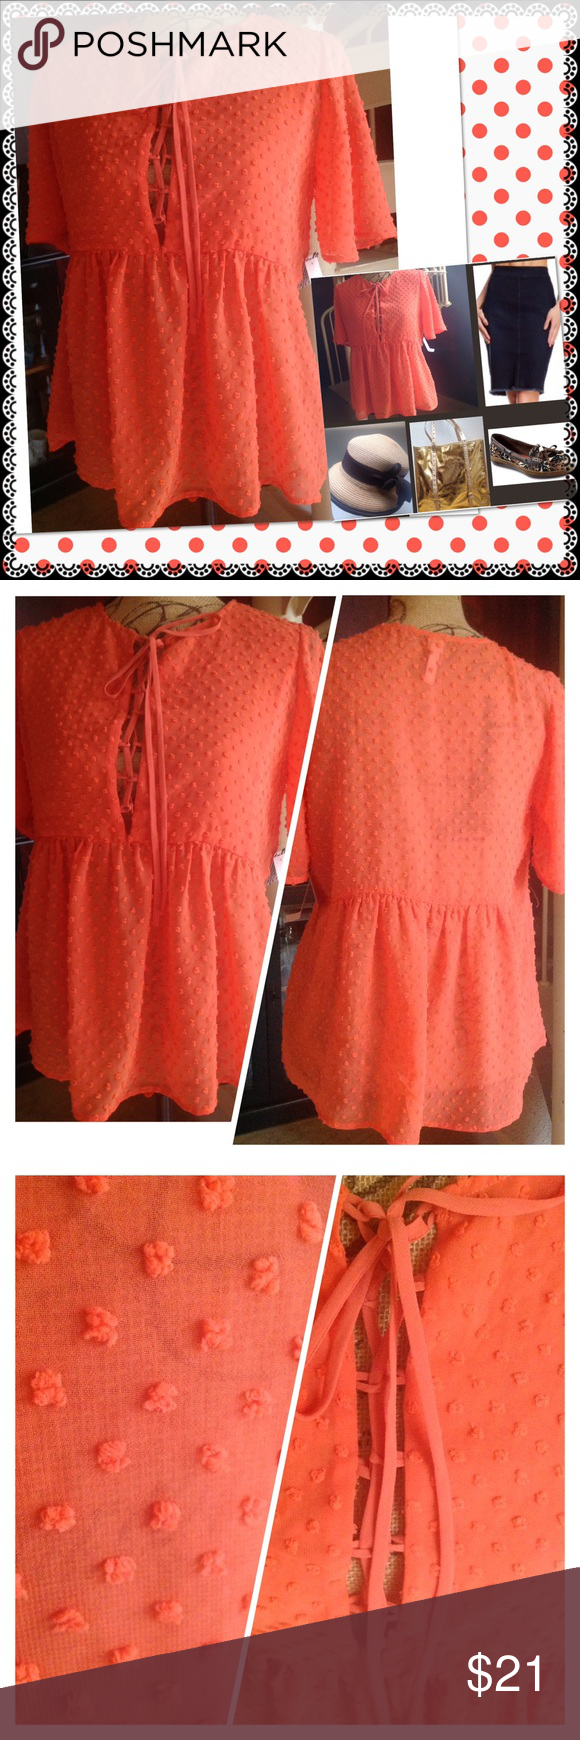 LACEY PARTIALLY SHEERED BEAUTIFUL  TOP SHEER BEAUTY ADJUST YOUR OPENING  WITH SOFT TIES. THE BODICE IS SLIGHTLY THICKENED FOR DISCRETION, From Jeans to White Slacks in Summer or With a Denim Skirt. Have it Right here.  Only your Imagination Limits You Don't Let it.  100% polyester FREE PRESS Tops Blouses